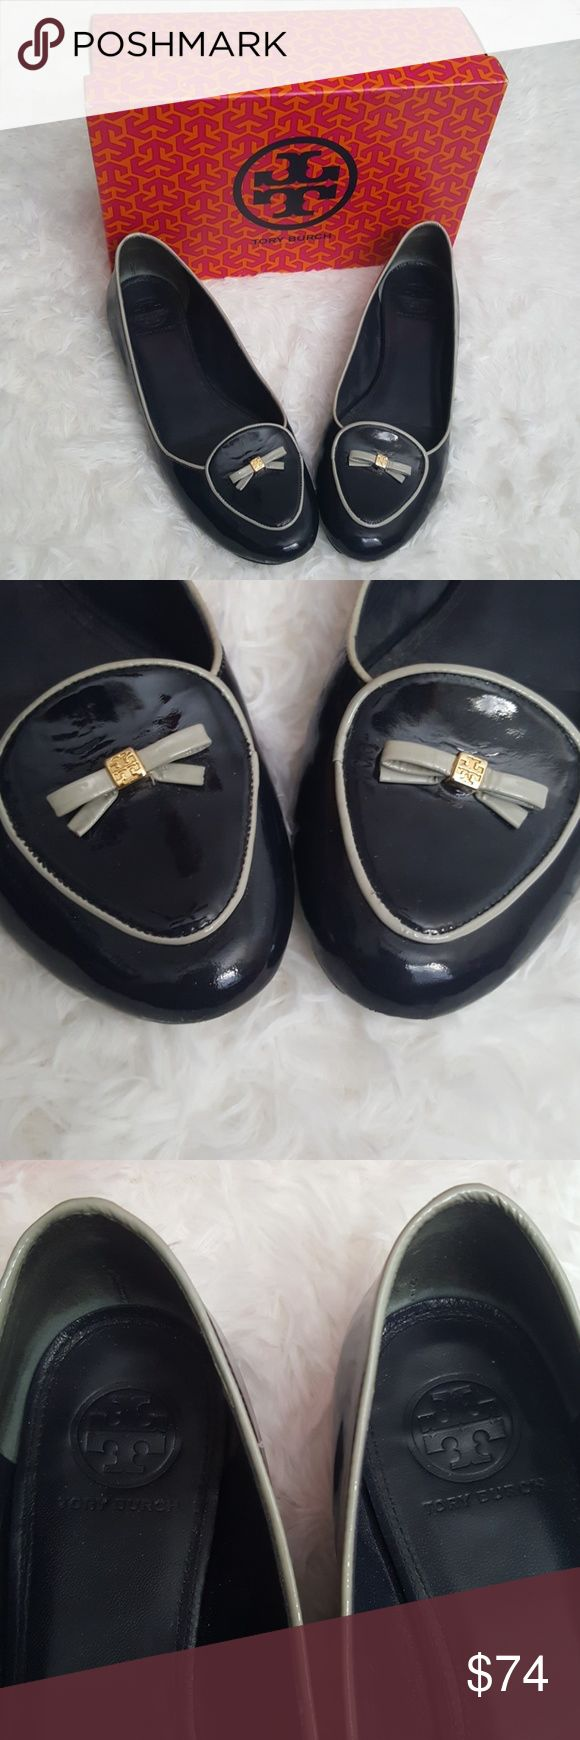 Tory Burch navy patent bow flats Great condition. Nice navy color with grey trim and cute grey bow with gold logo. Some wear but lots of life left! Small scuff on front toe at bottom, can't see it from above only if you turn the shoe over. Comes with a Tory Burch box but not the shoes original.  Size 10 Tory Burch Shoes Flats & Loafers